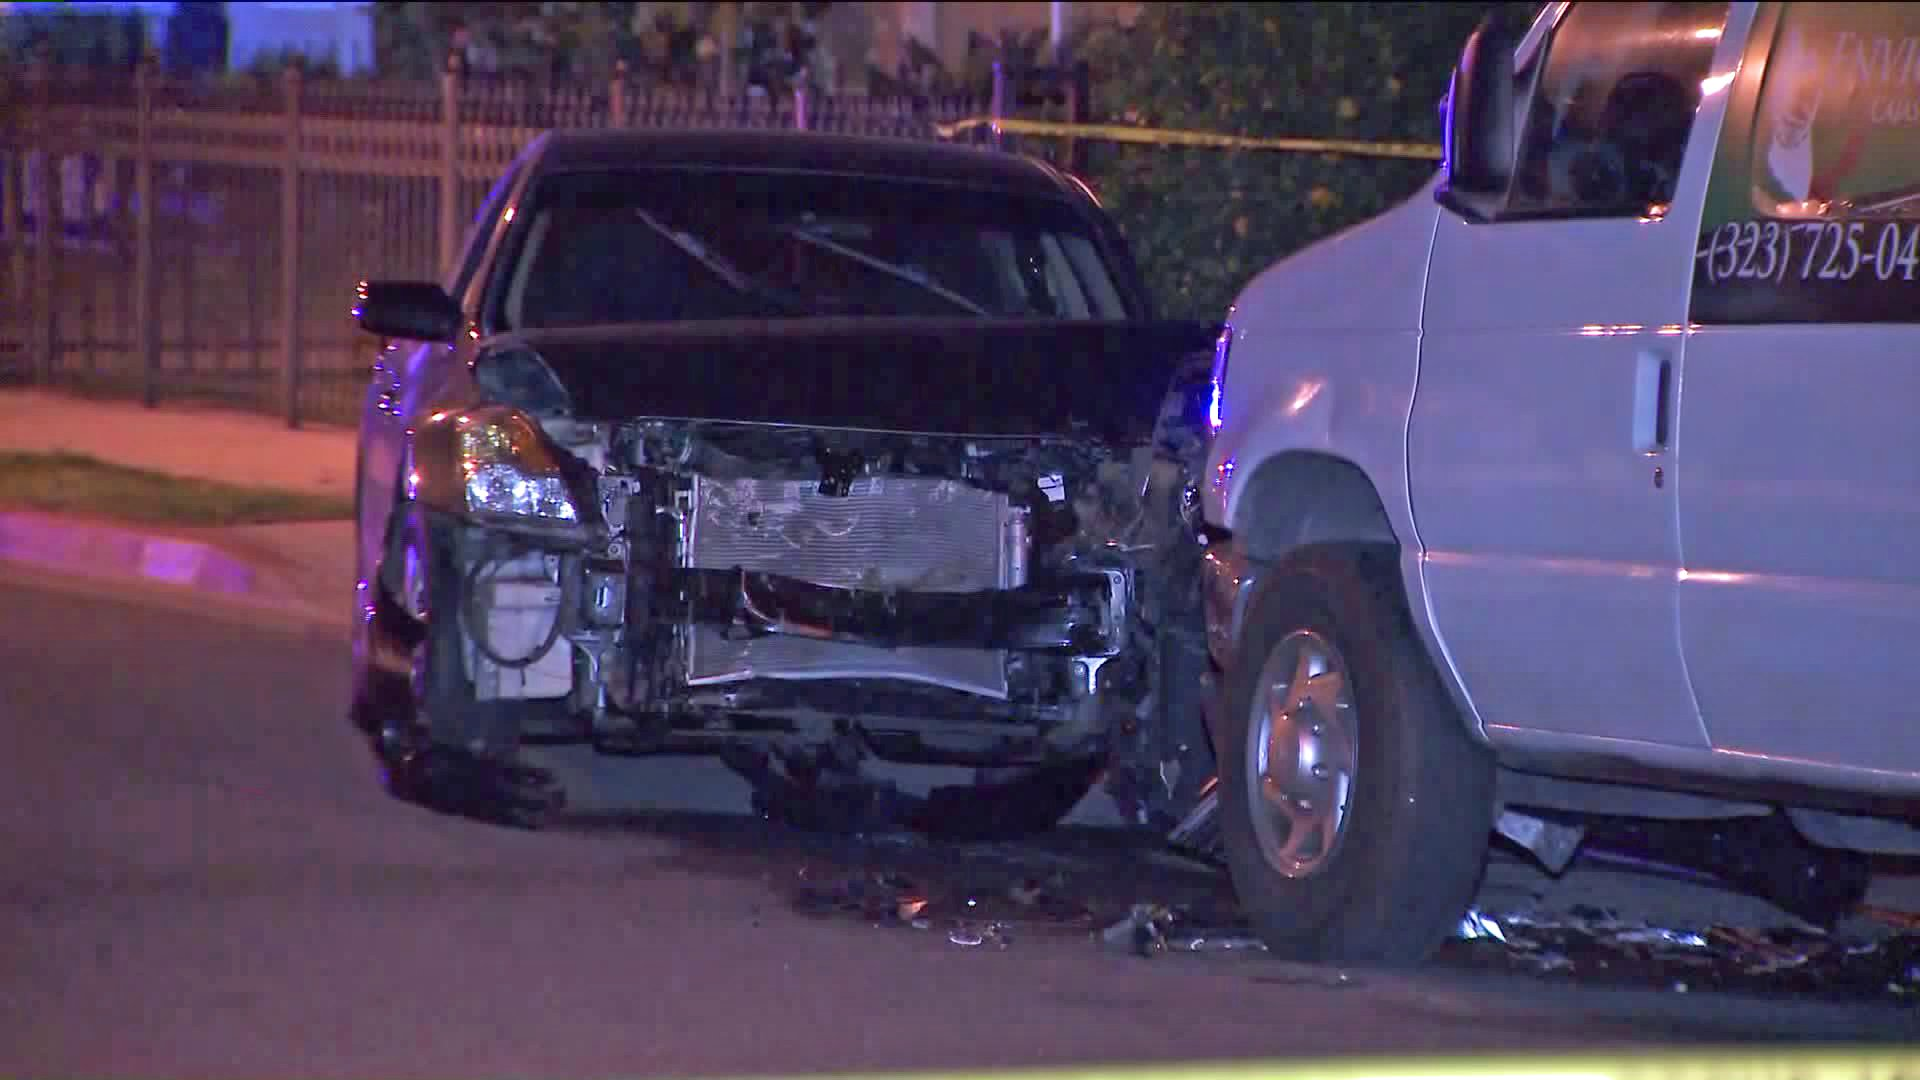 A crashed car is seen at the scene of a deadly shooting in Bell on Feb. 10, 2020. (Credit: KTLA)